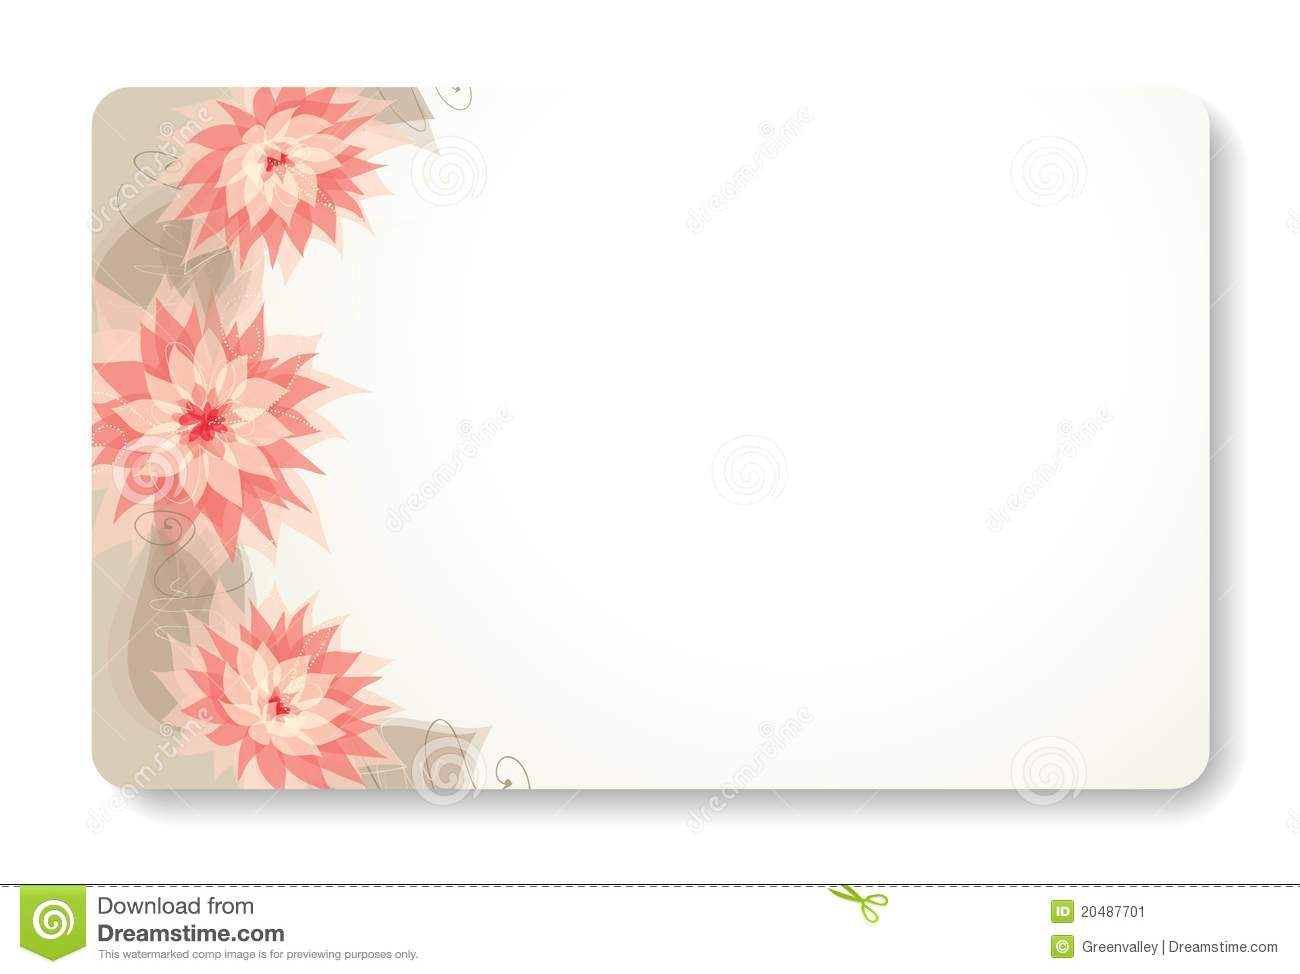 Business card background stock vector. Illustration of concept ...